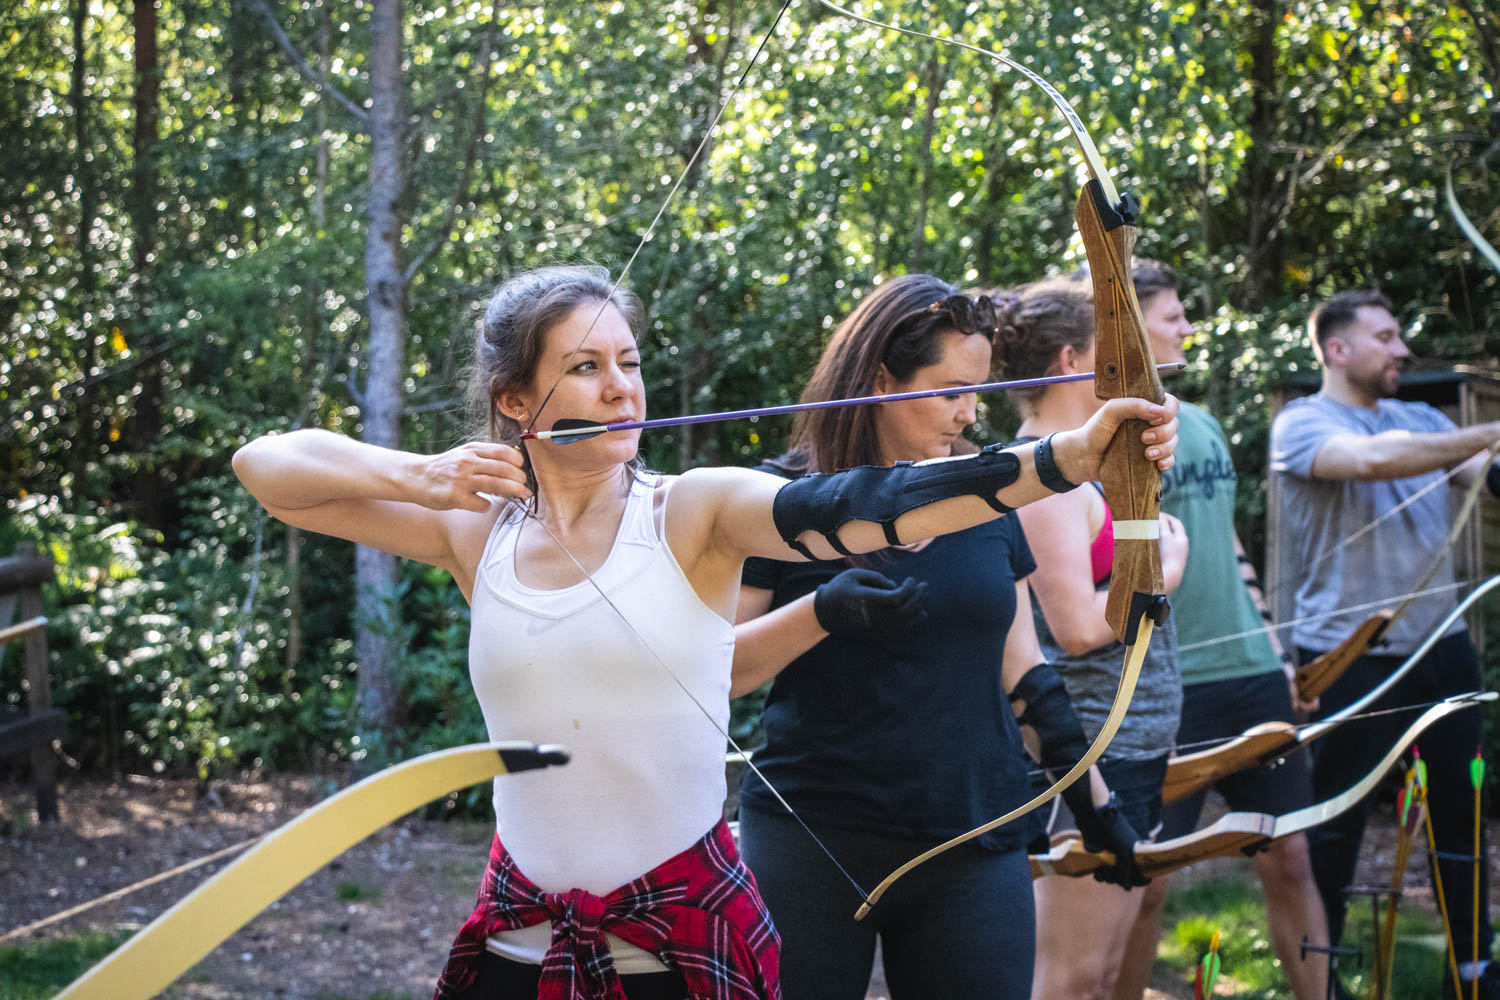 A group of colleagues taking part in archery during a back to business team building workshop